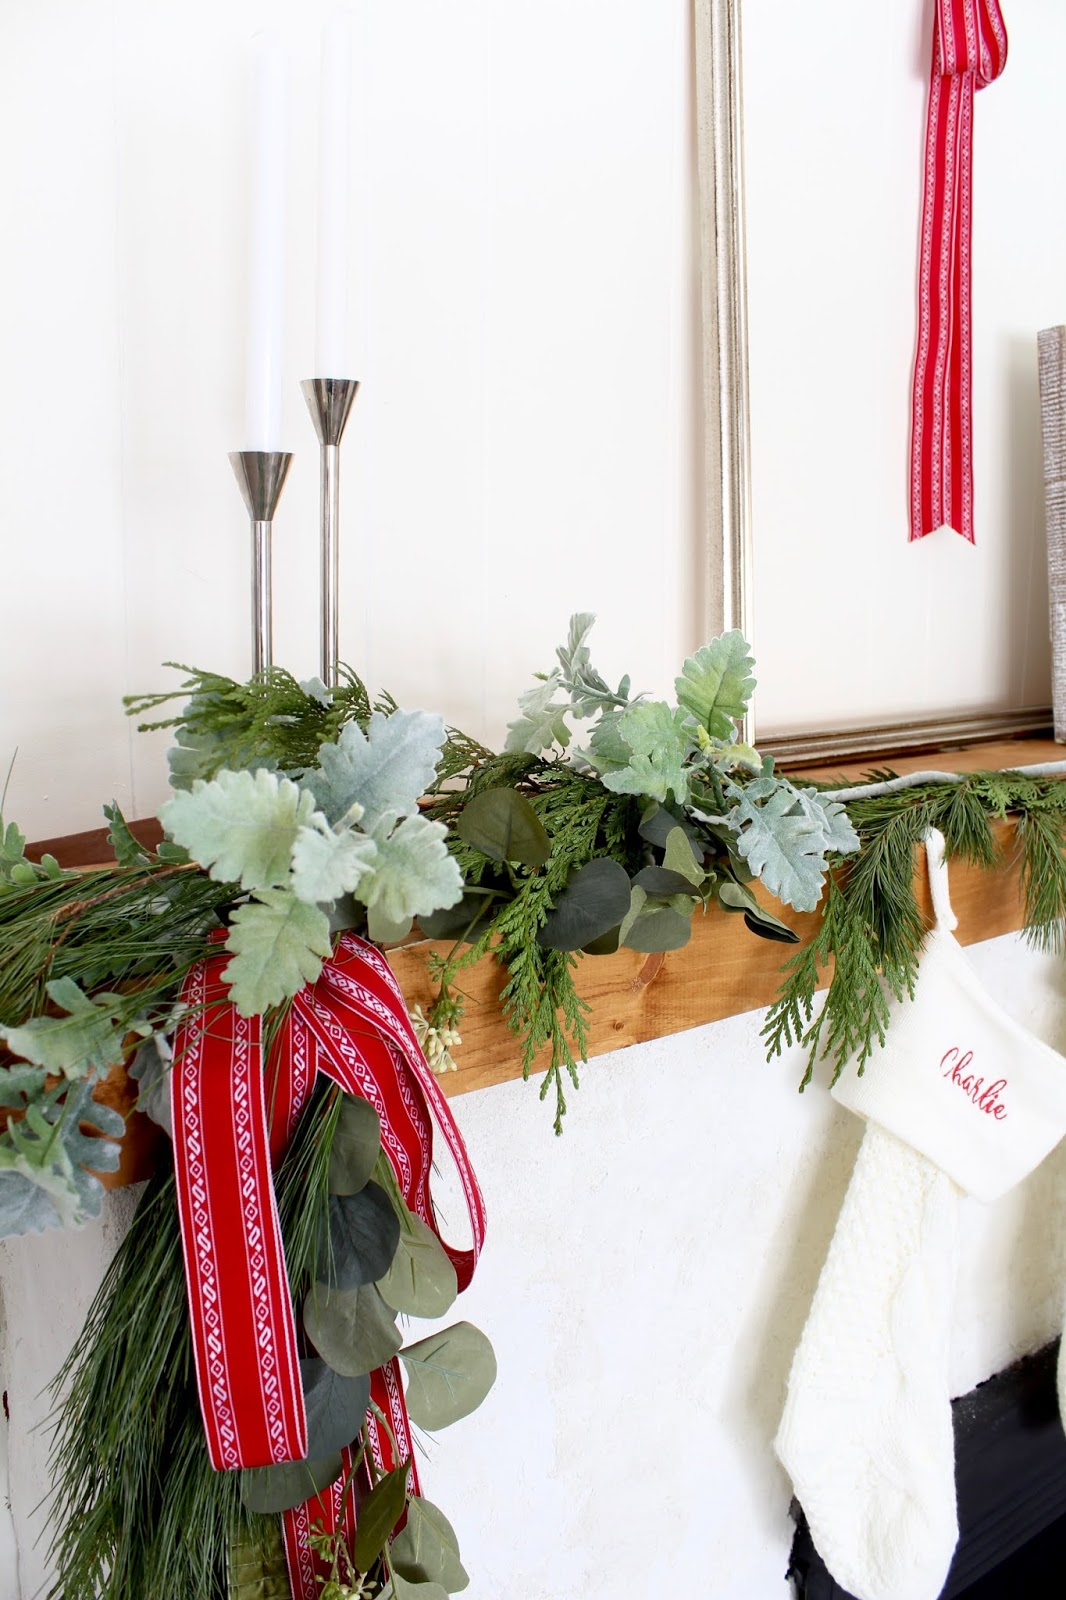 Modern-Holiday-Mantel-ideas-harlow-and-thistle-15